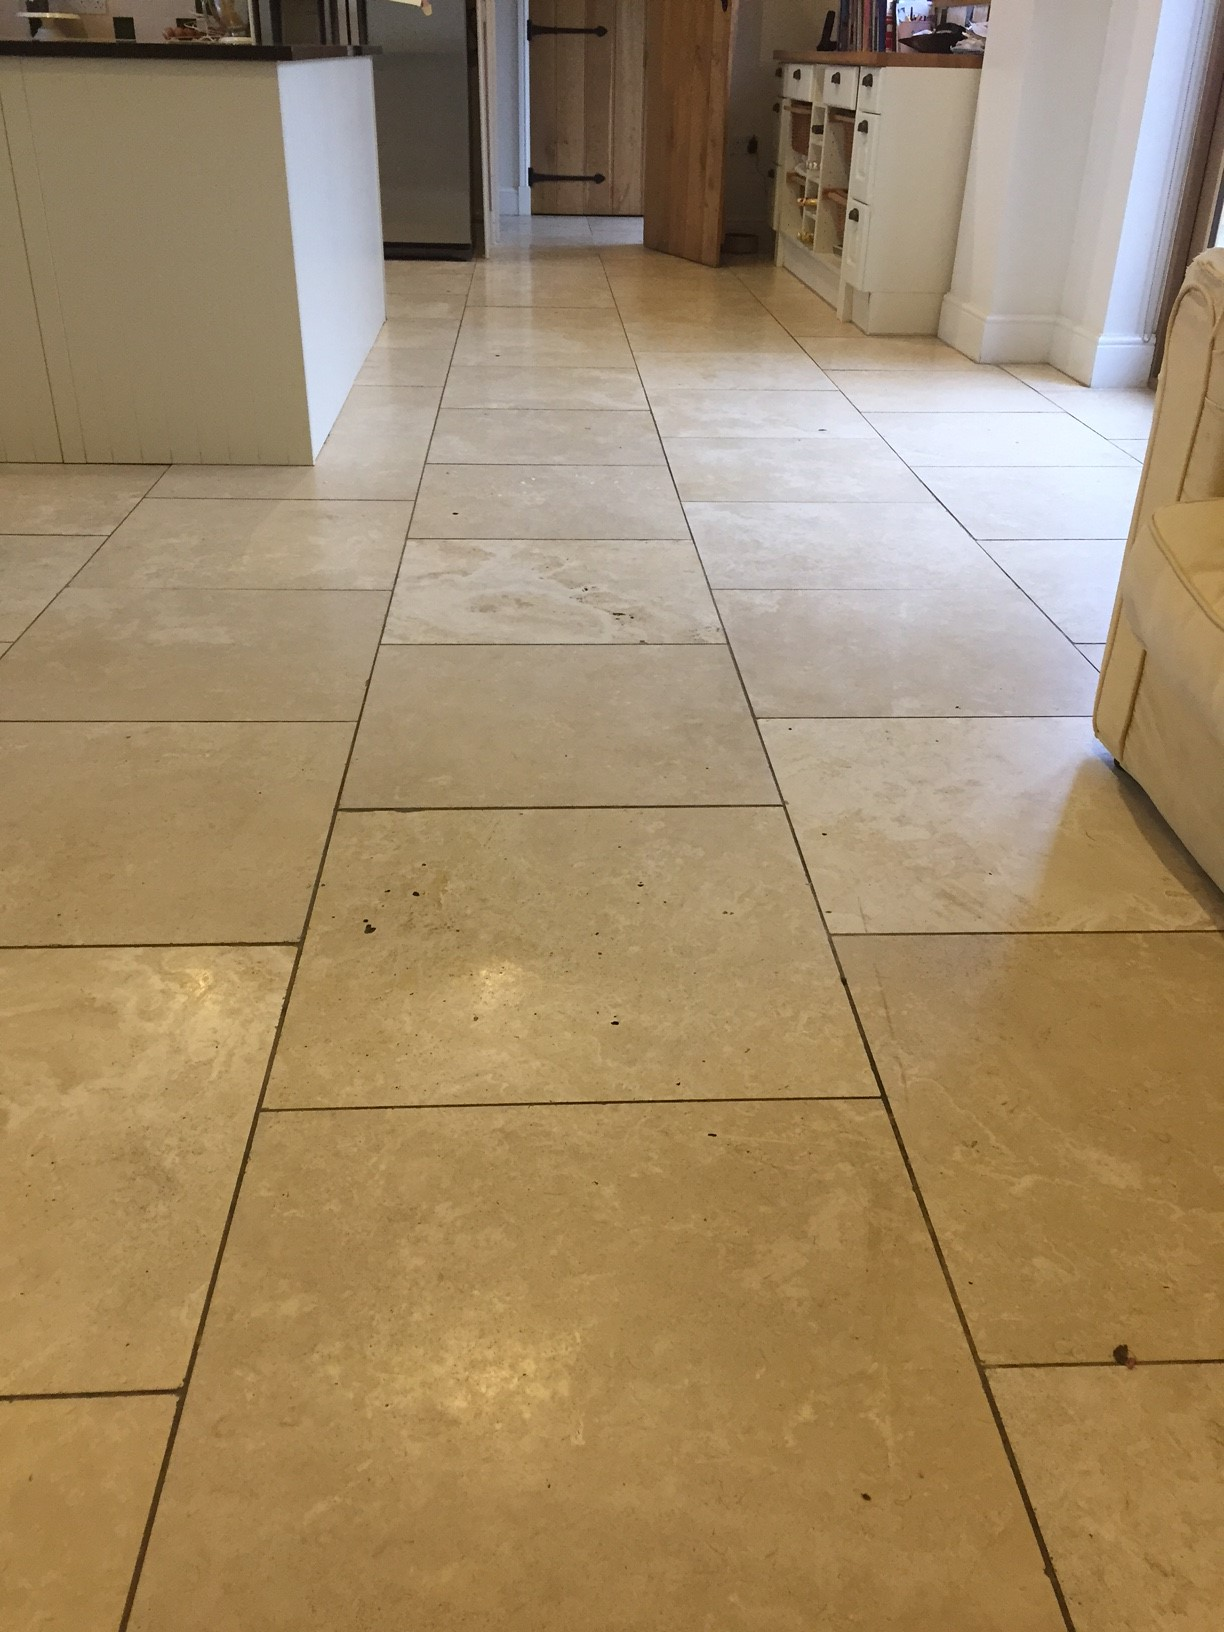 Is Travertine Good For Kitchen Floors Floor Restoration Stone Cleaning And Polishing Tips For